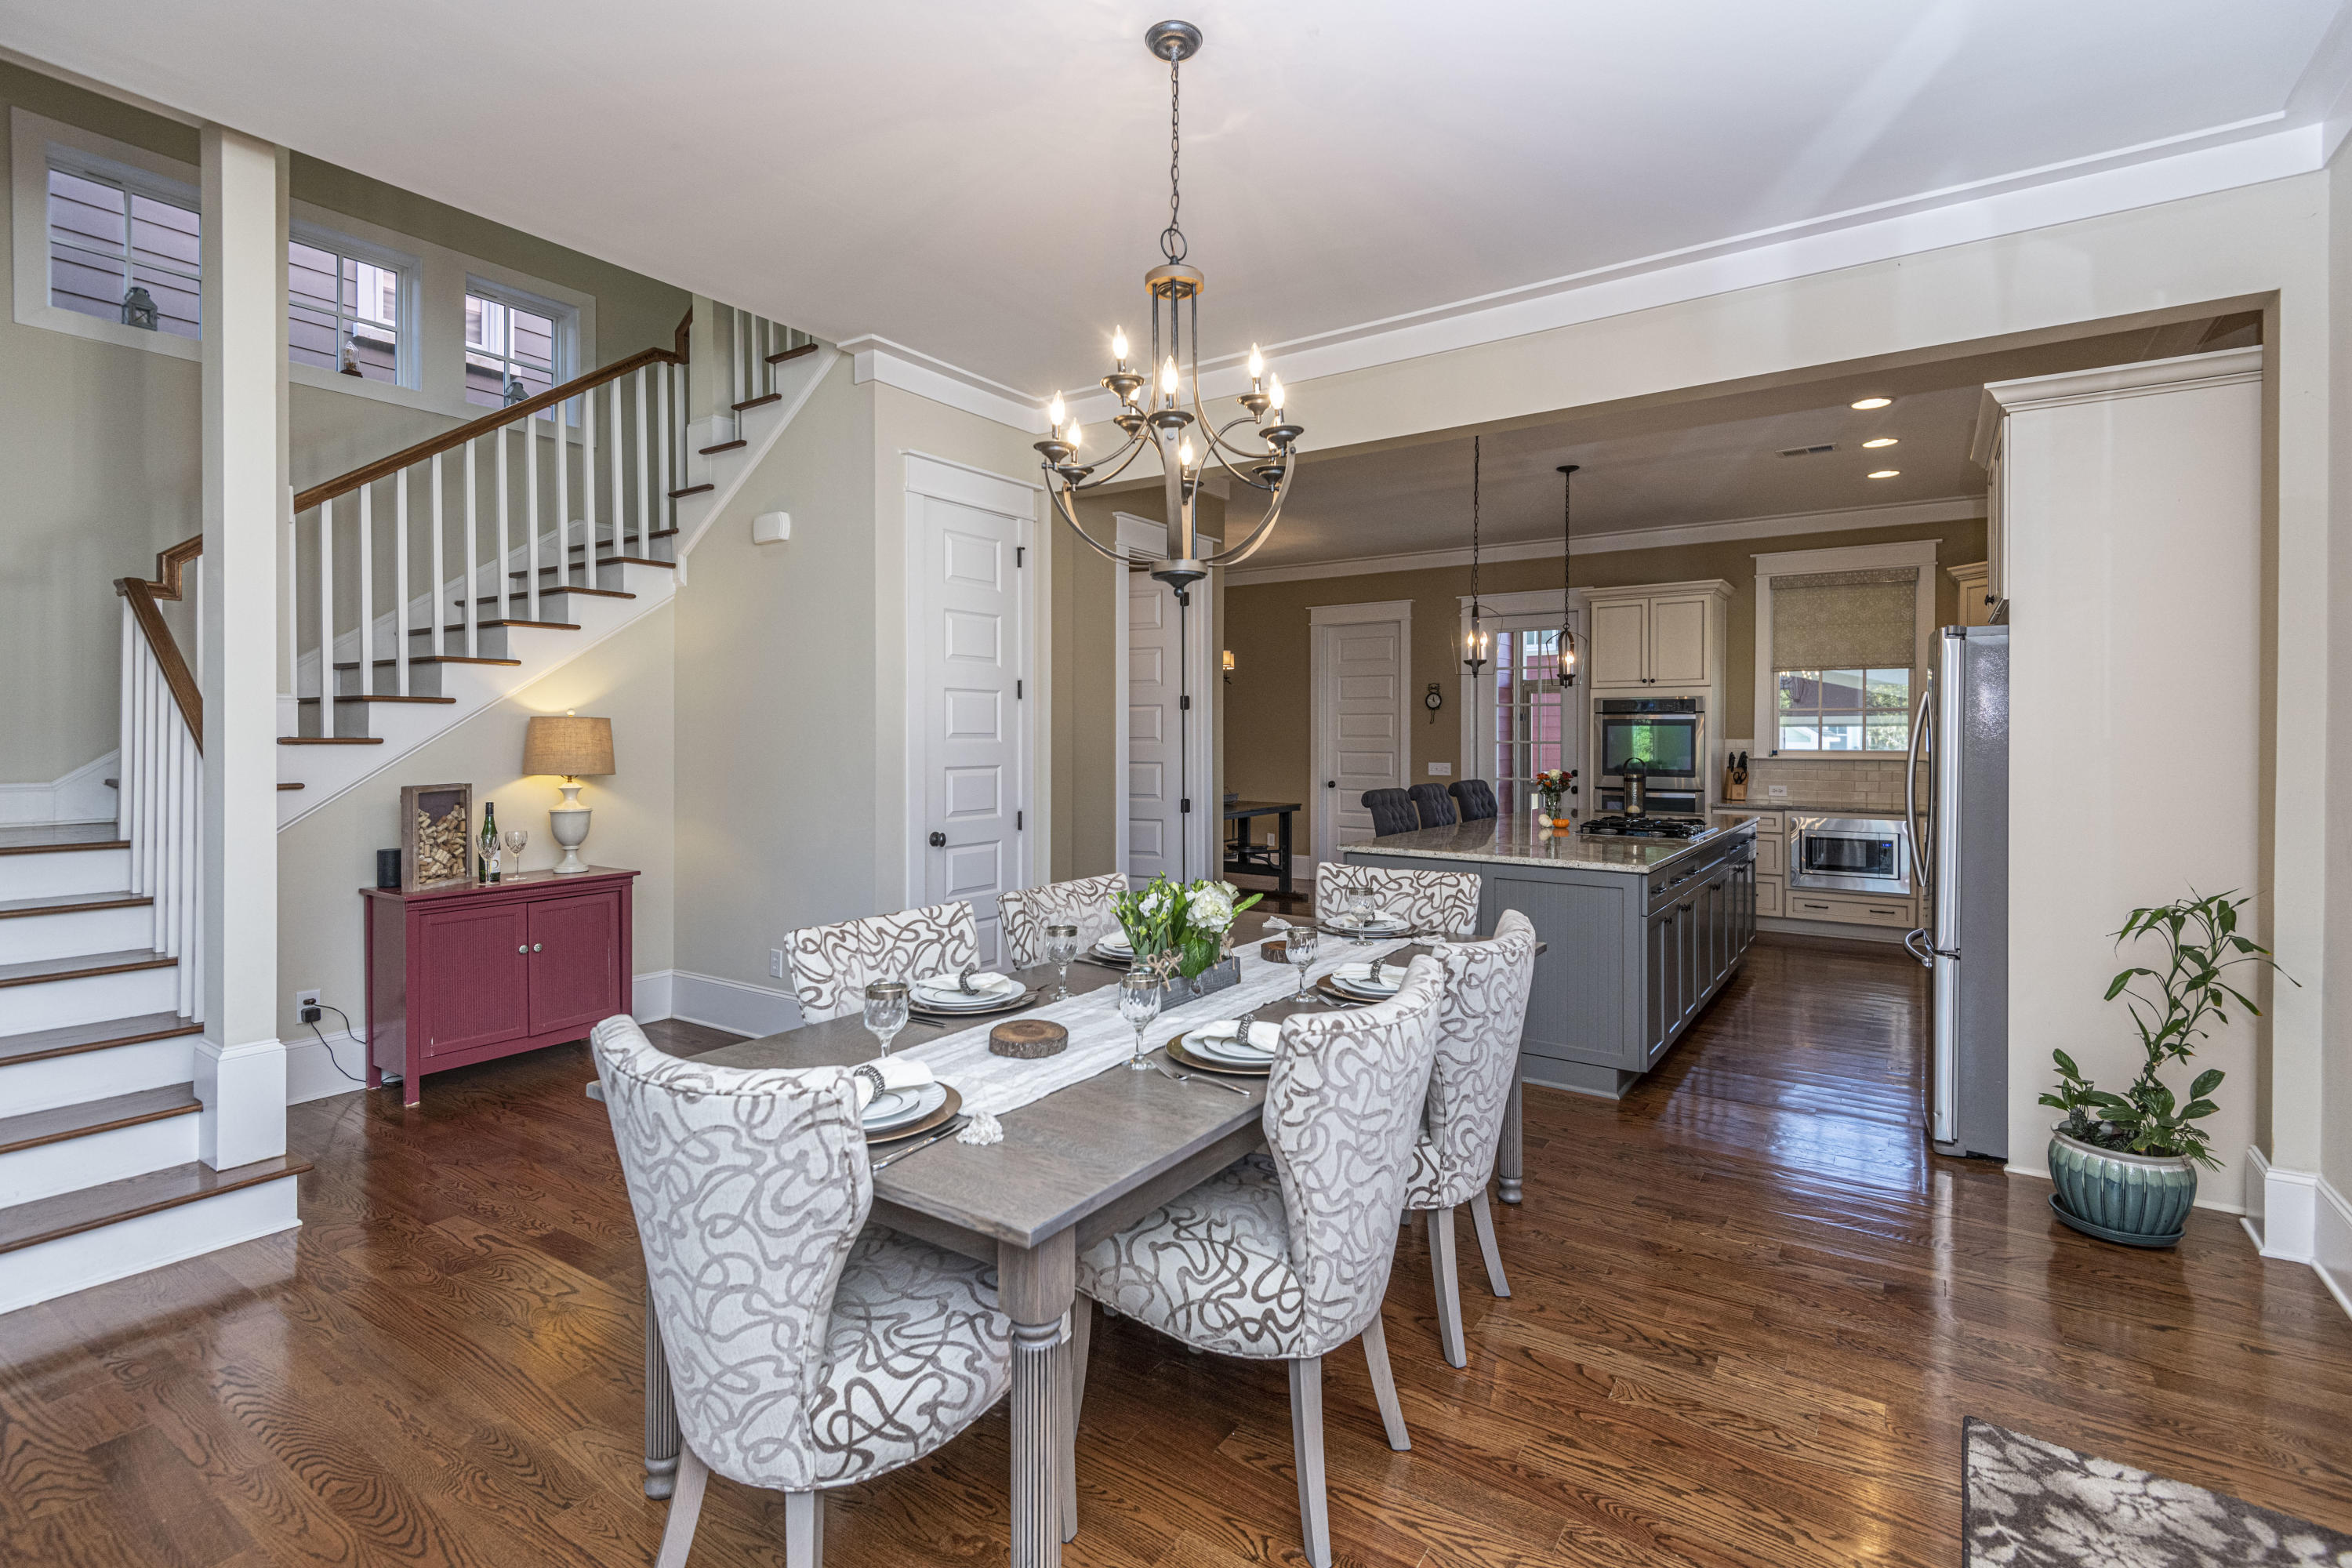 Watermark Homes For Sale - 1401 Lettered Olive, Mount Pleasant, SC - 7